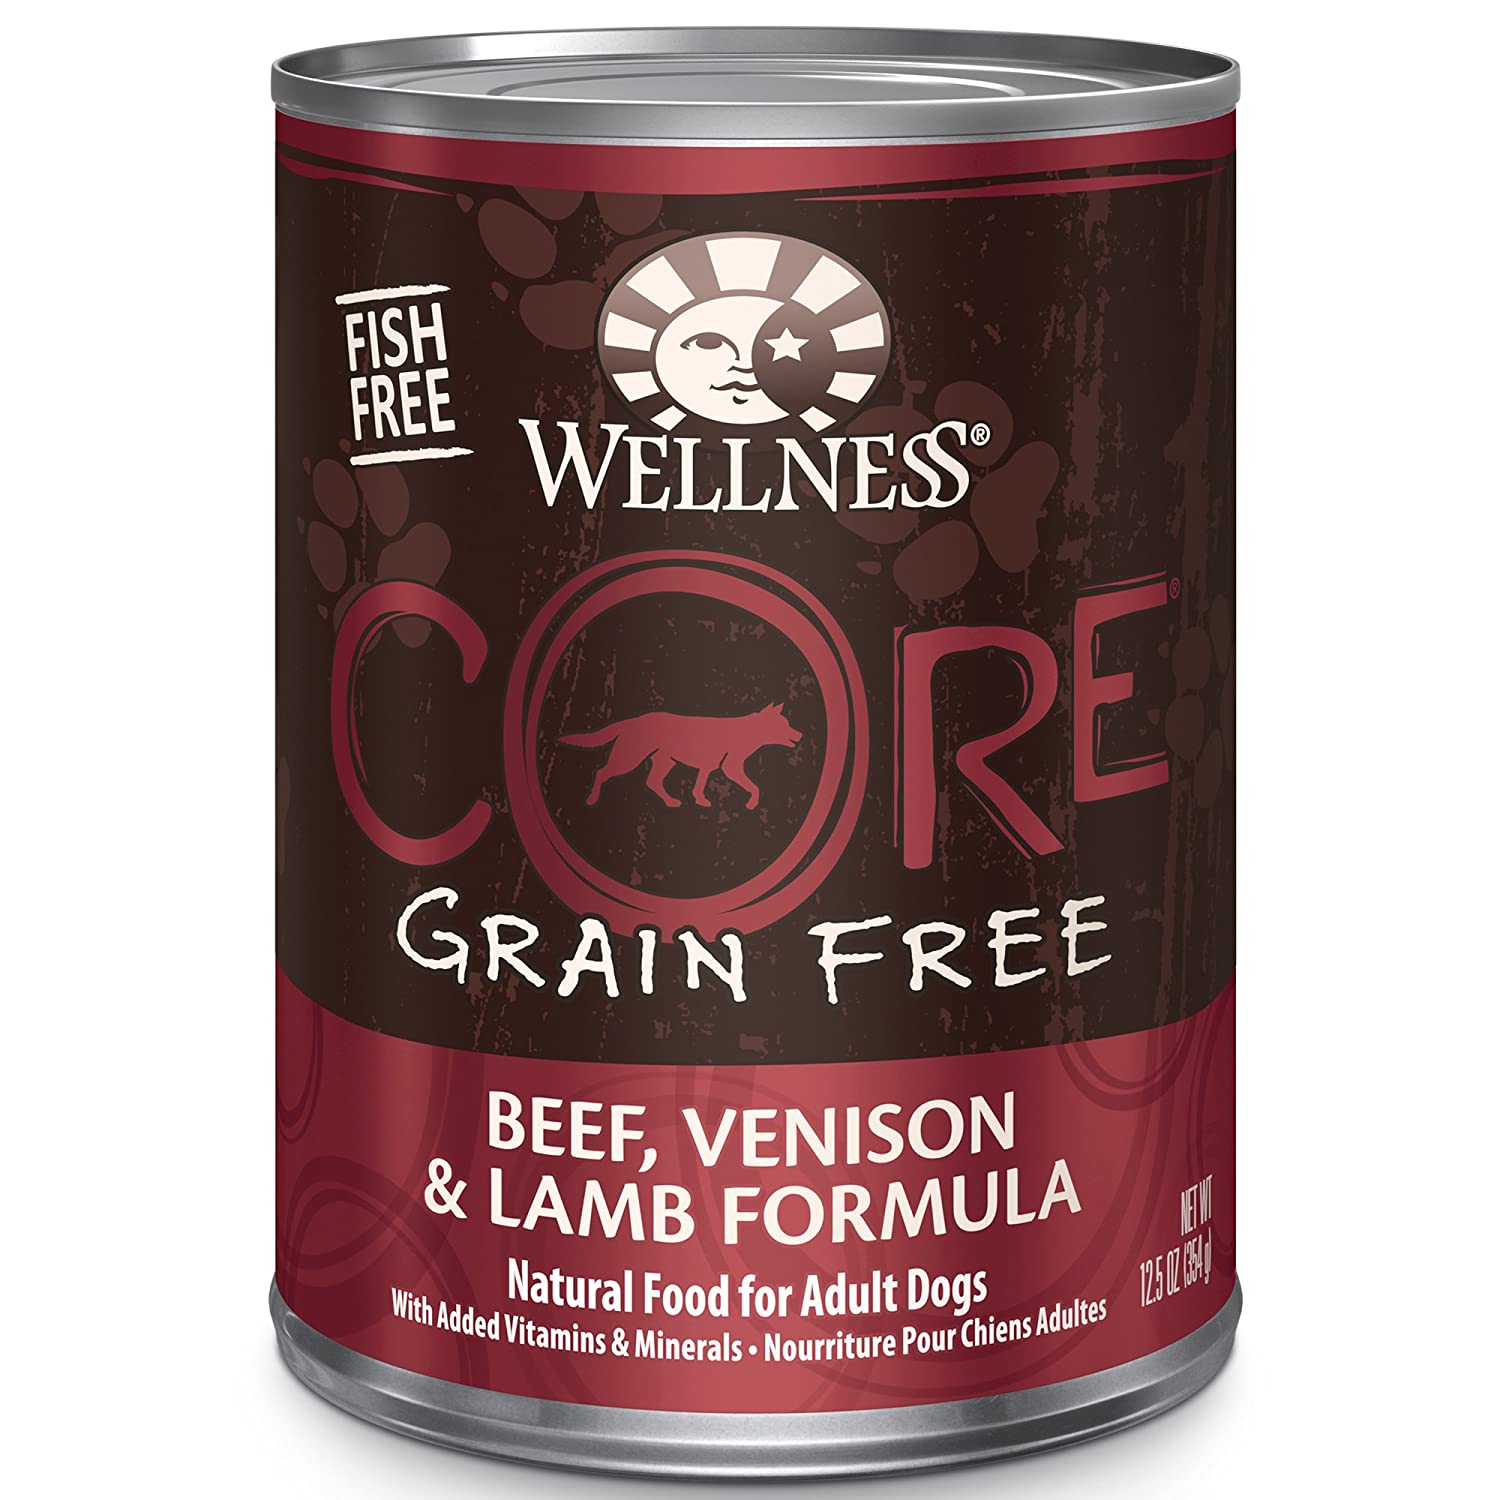 Wellness CORE Grain Free Beef, Venison & Lamb Natural Wet Canned Dog Food, 12.5-Ounce Can (Pack of 12)